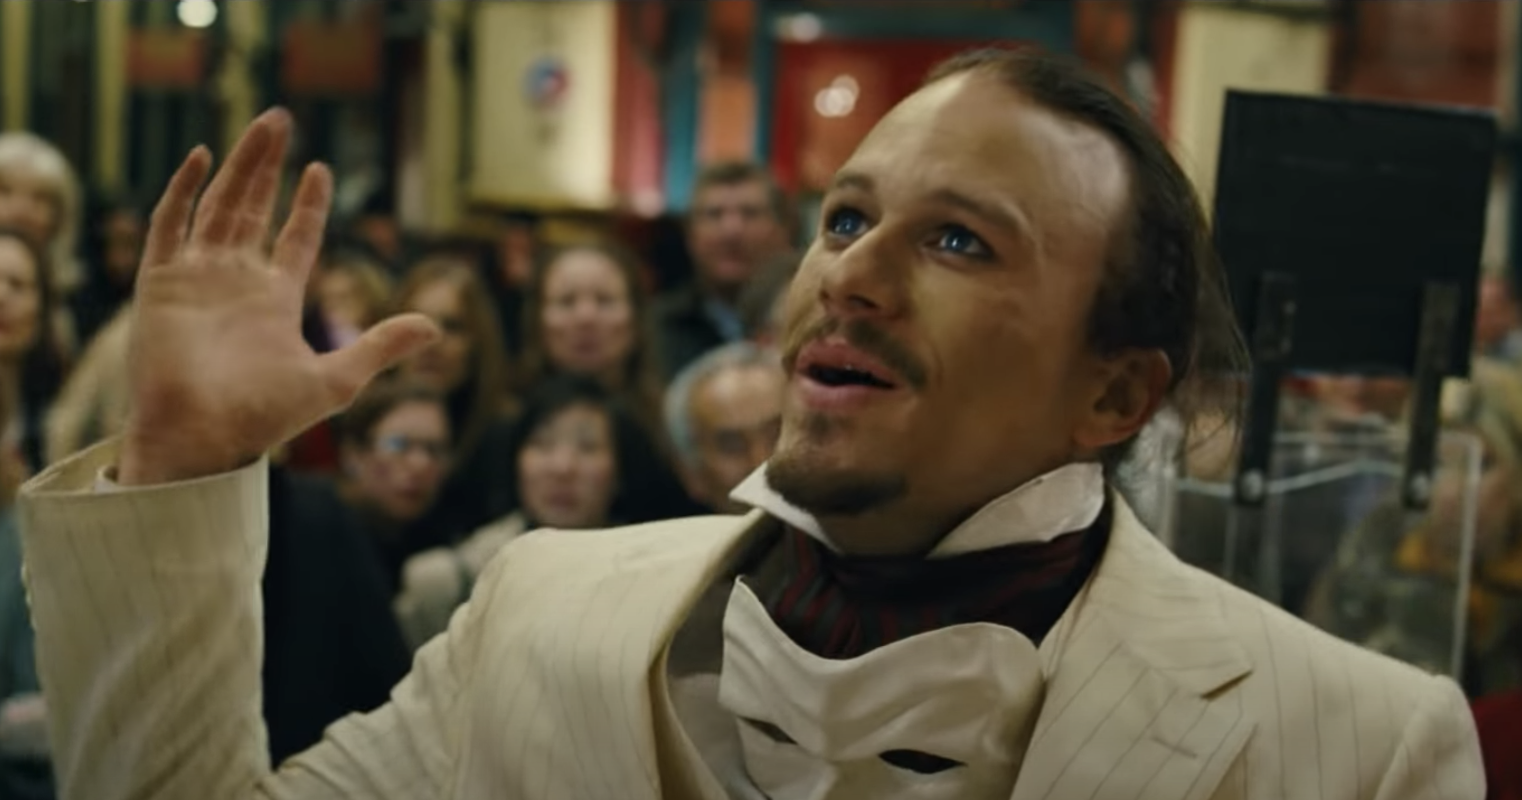 Heath Ledger in a white suit speaks to a crowd in the film